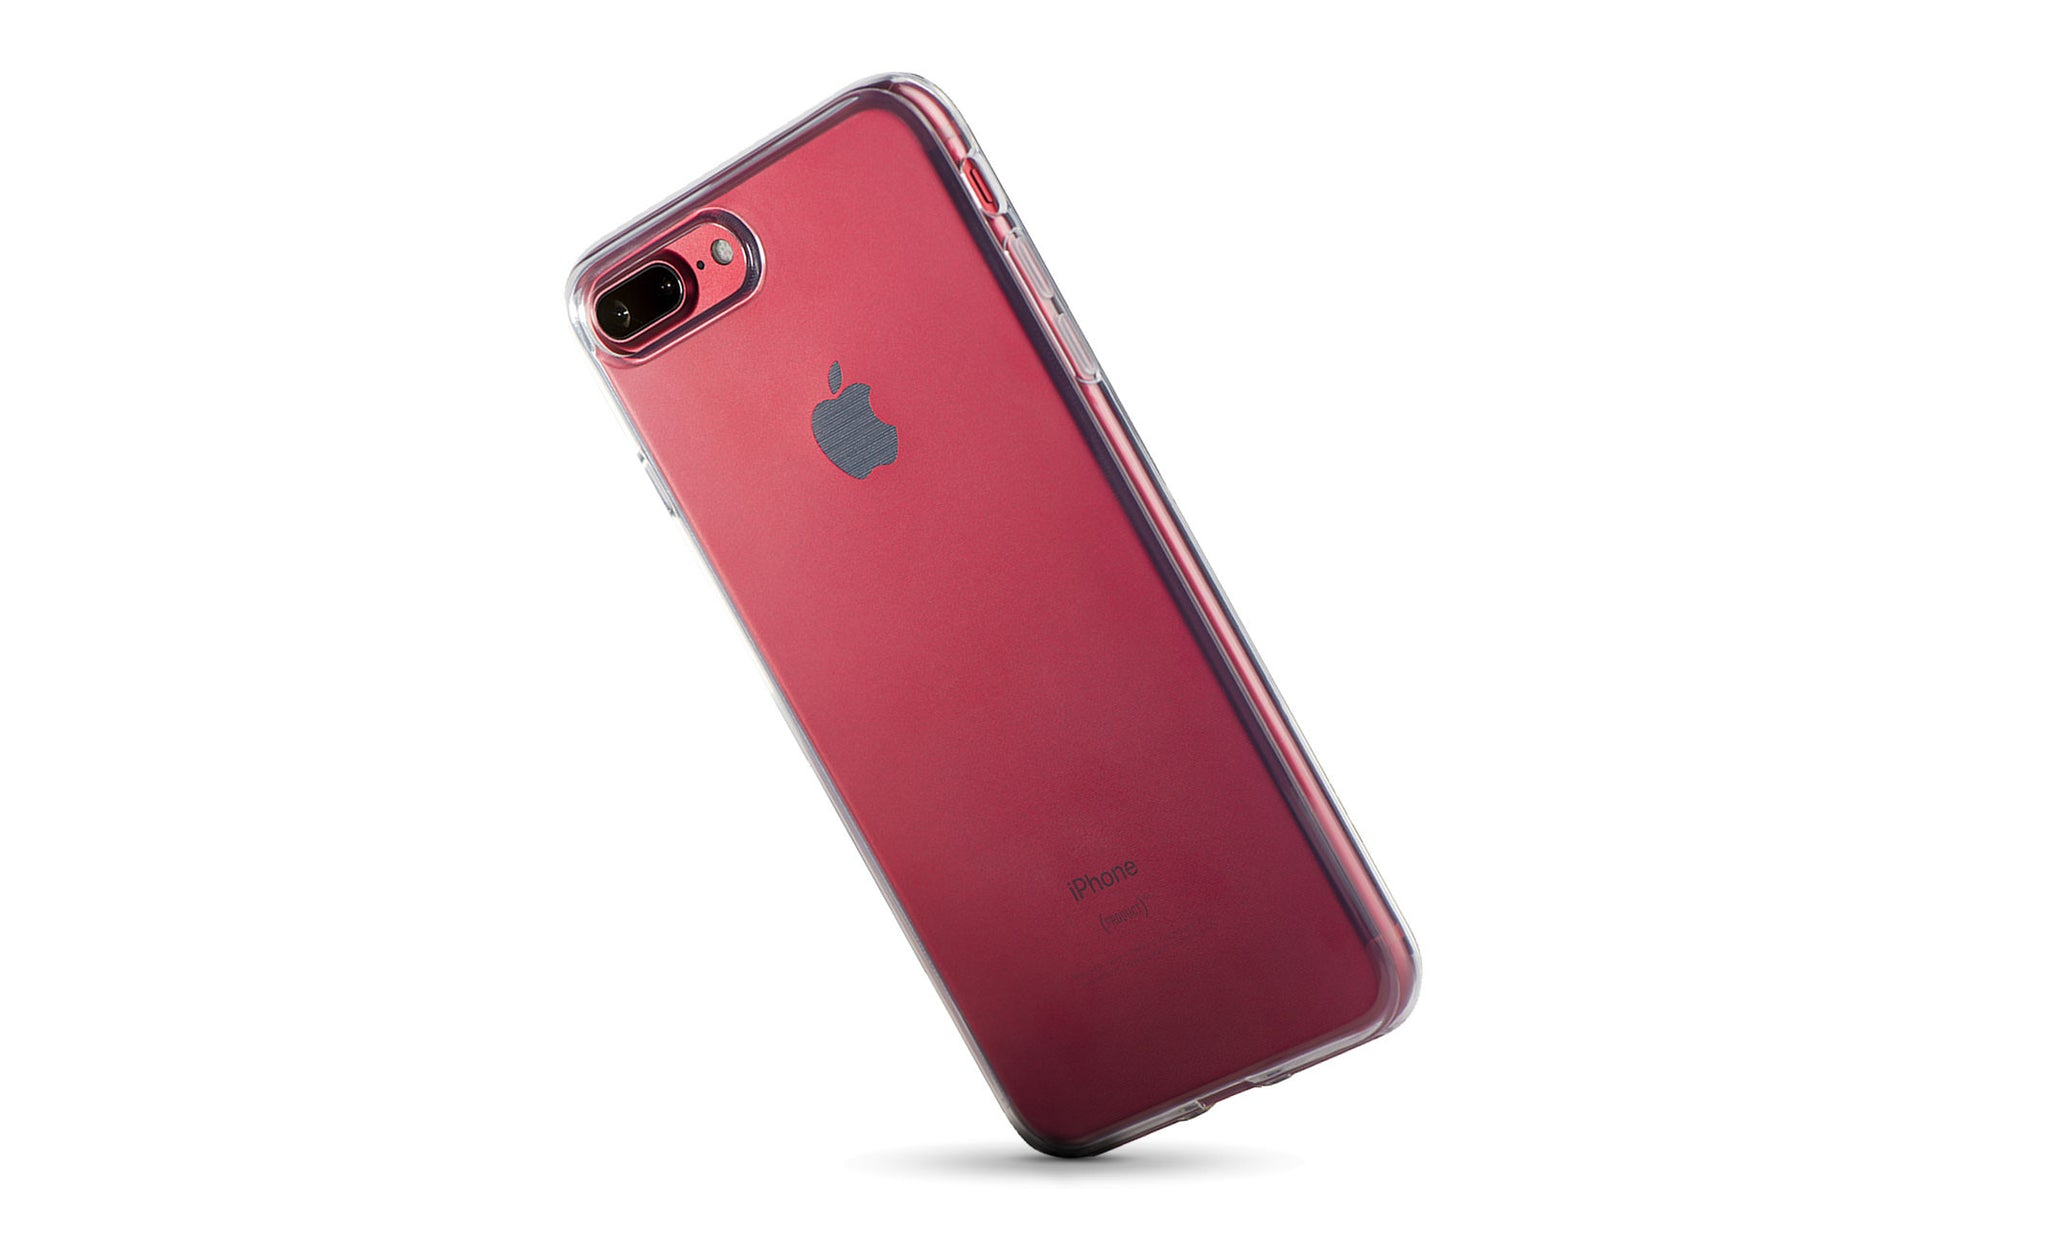 A clear iPhone case on the red iPhone 7 Plus